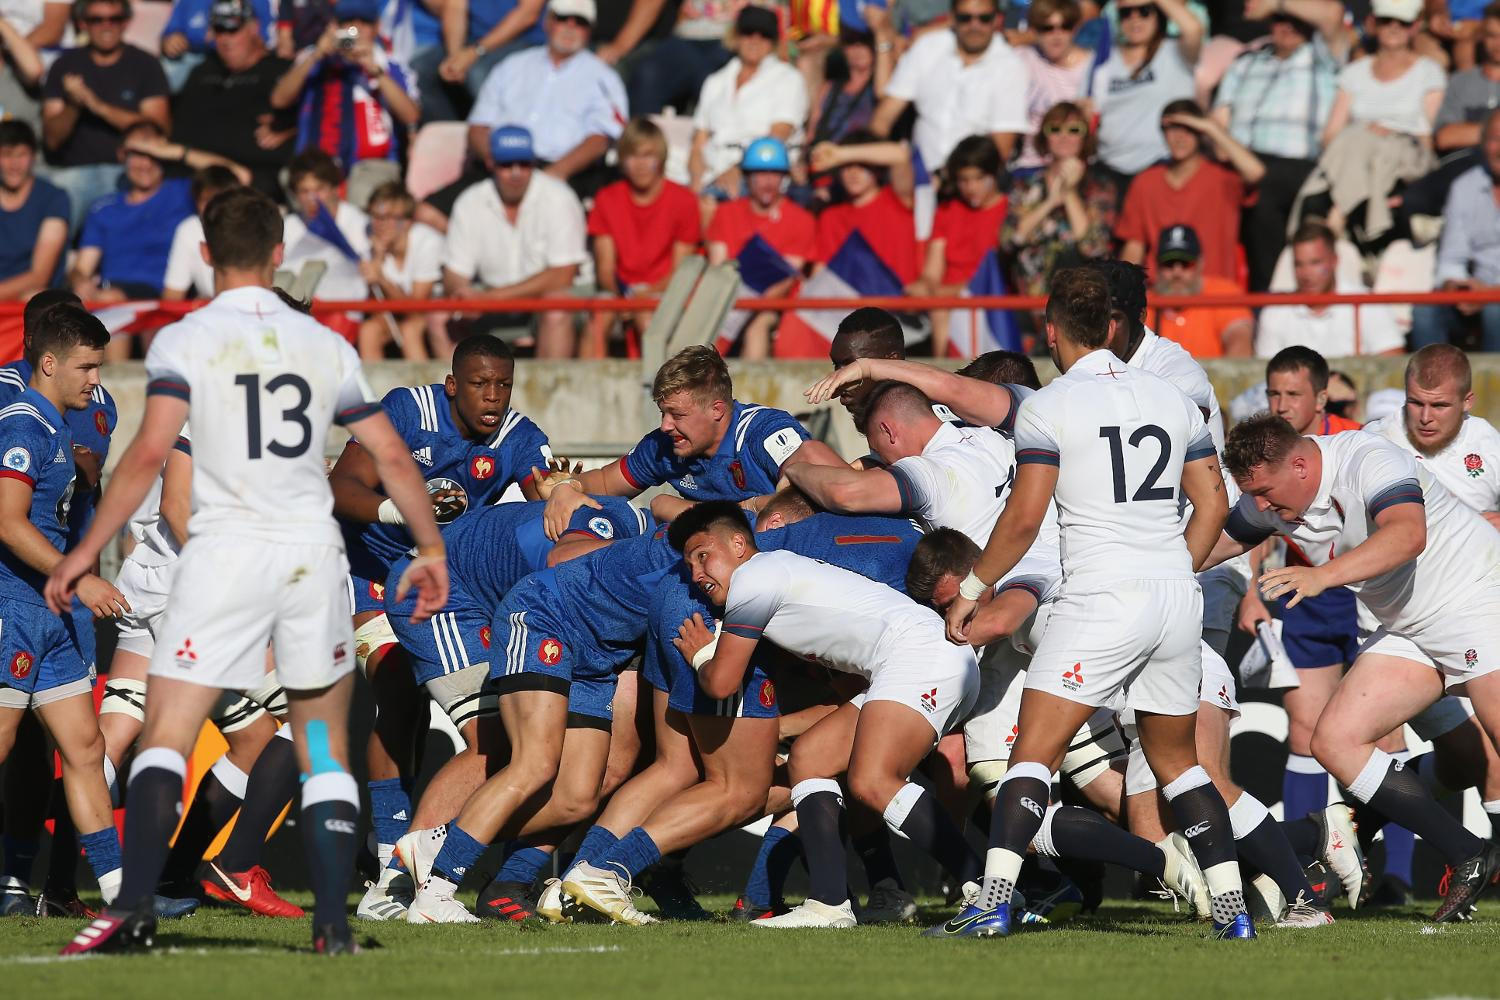 France overcame England in the final ©World Rugby